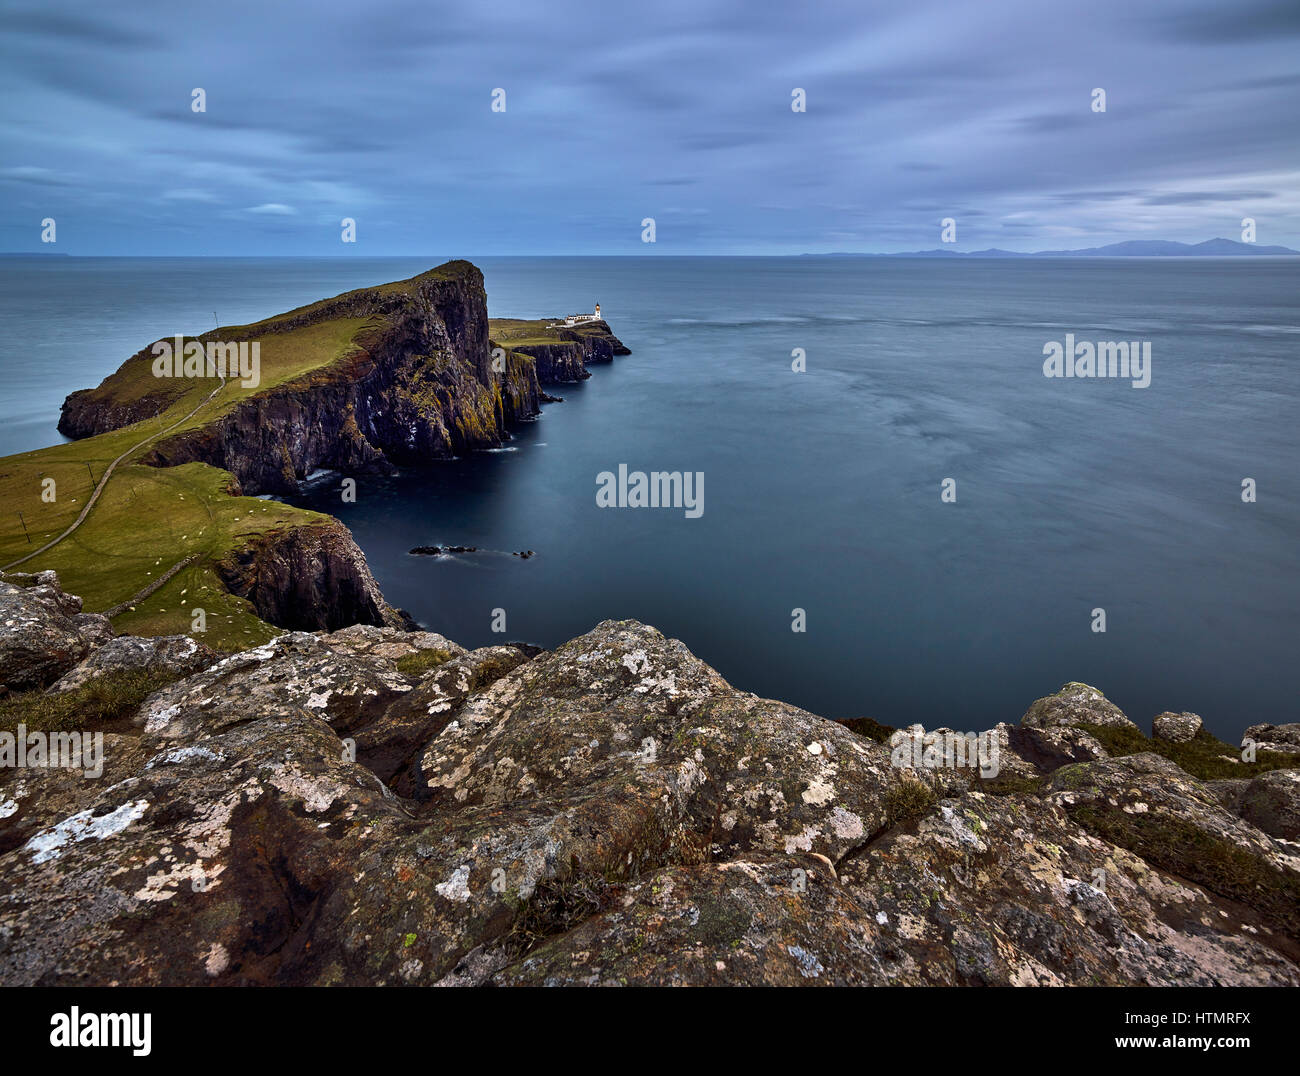 Neist Point Lighthouse, Isle of Skye, Scotland Stock Photo